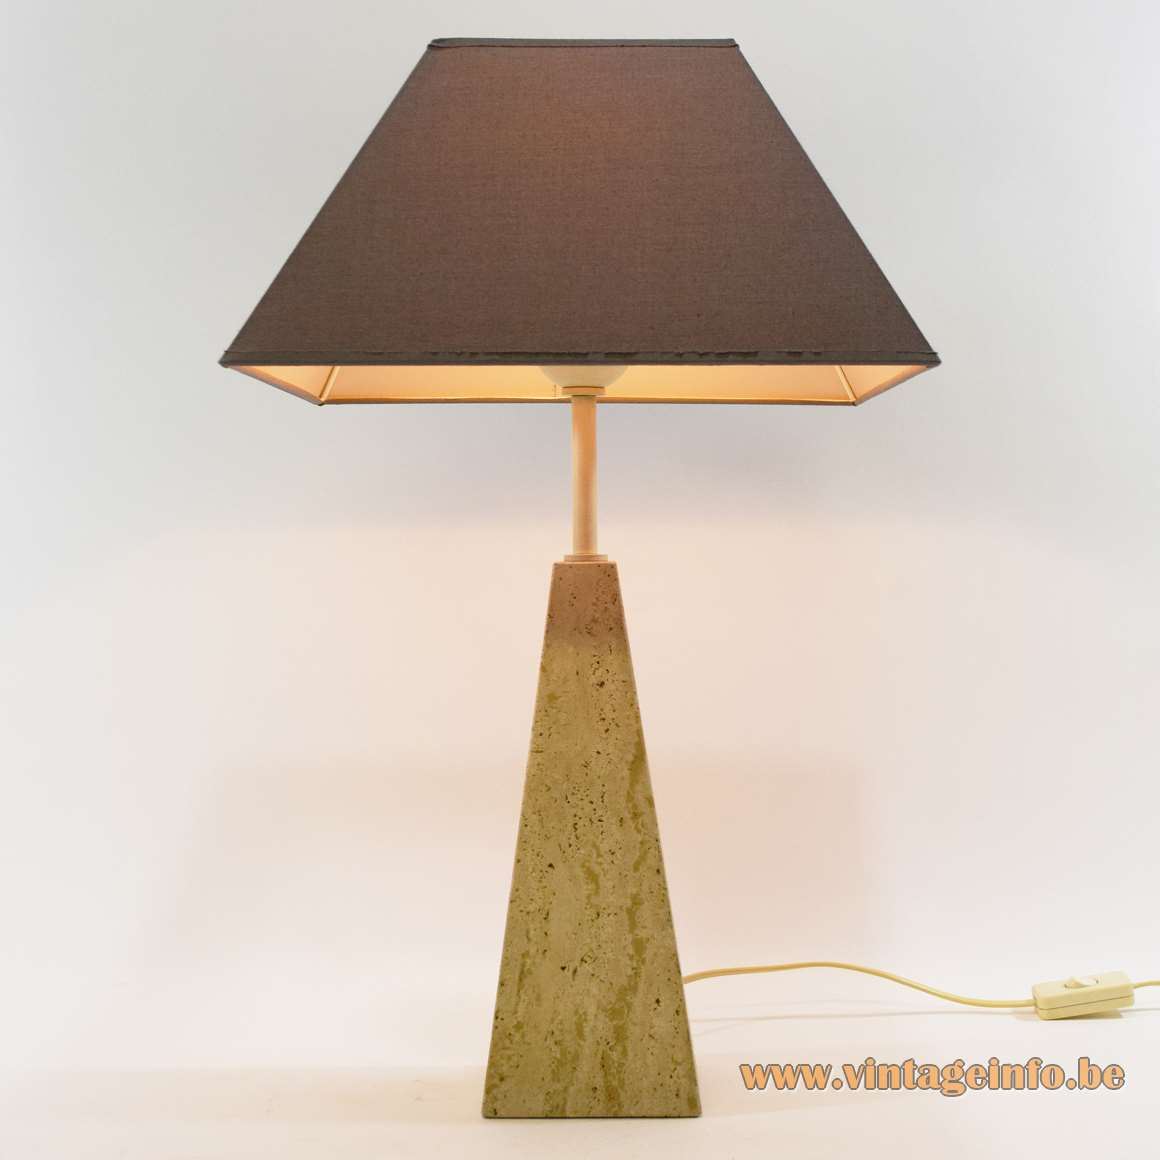 Le Dauphin Trabur Table Lamp